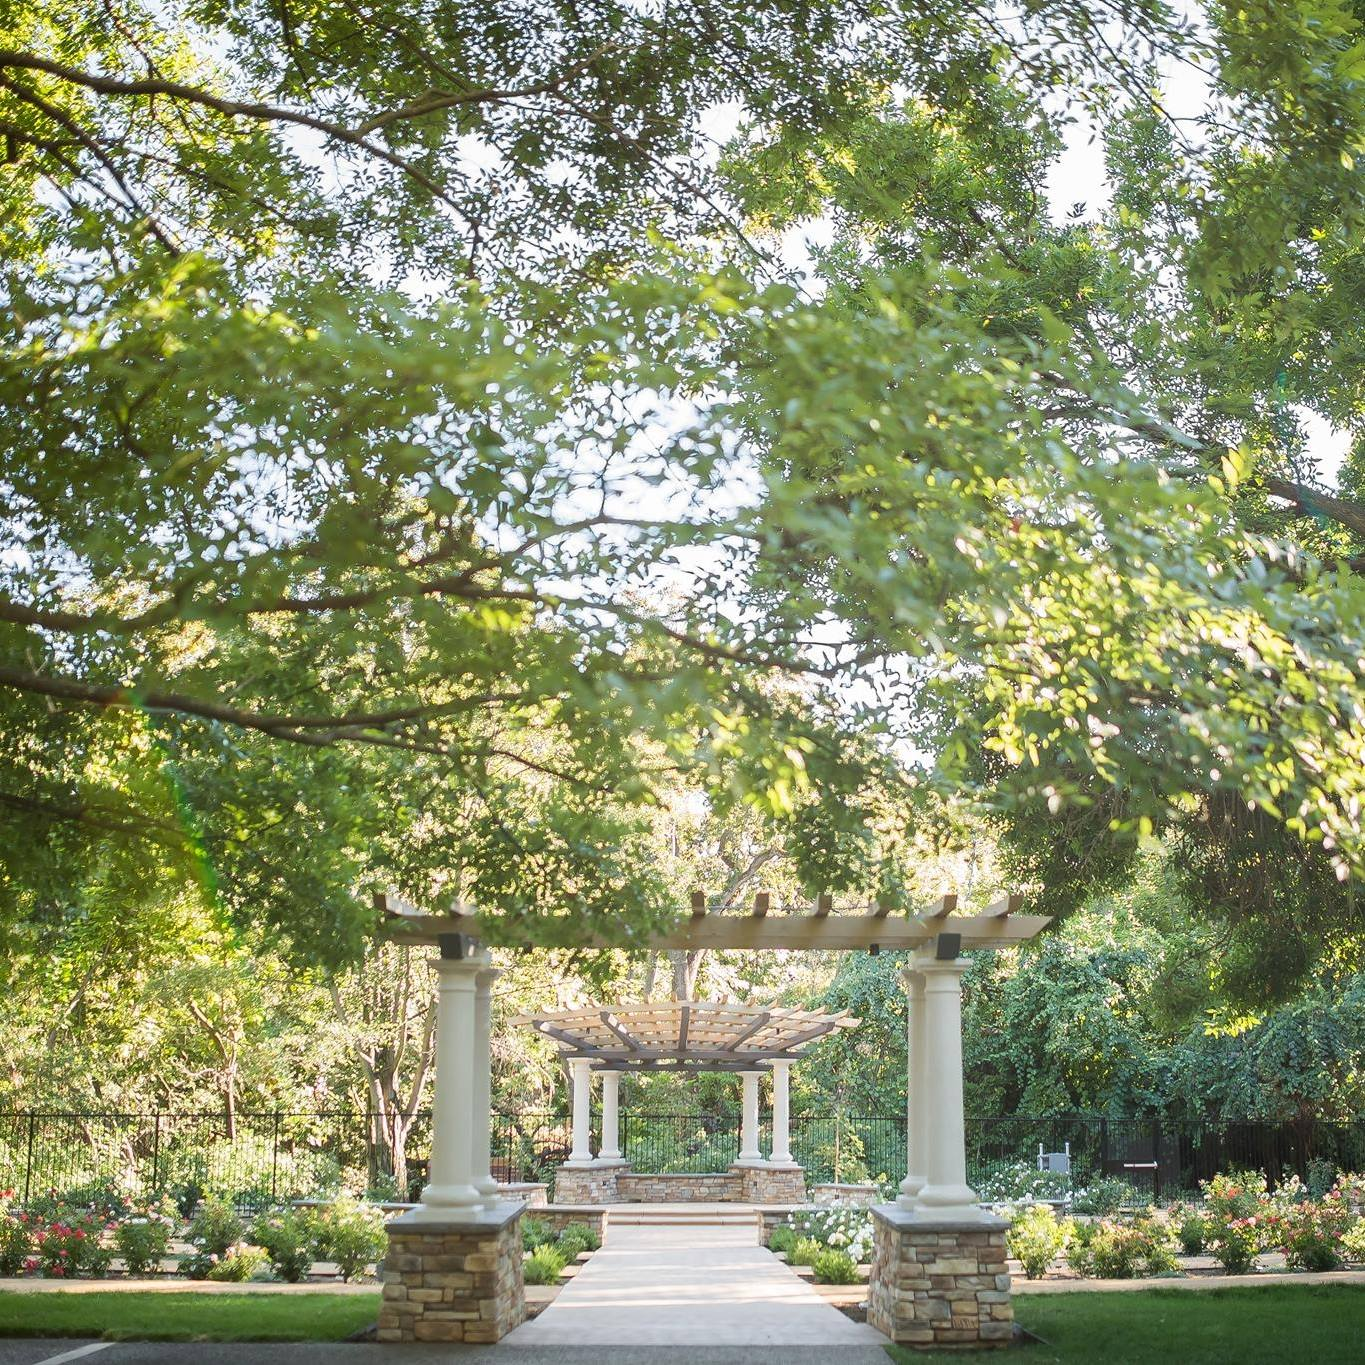 Creekside Rose Gardens - Located in the heart of Chico, the Creekside Rose Garden has over 200 roses, offering a beautiful setting for any event. We look forward to welcoming you!